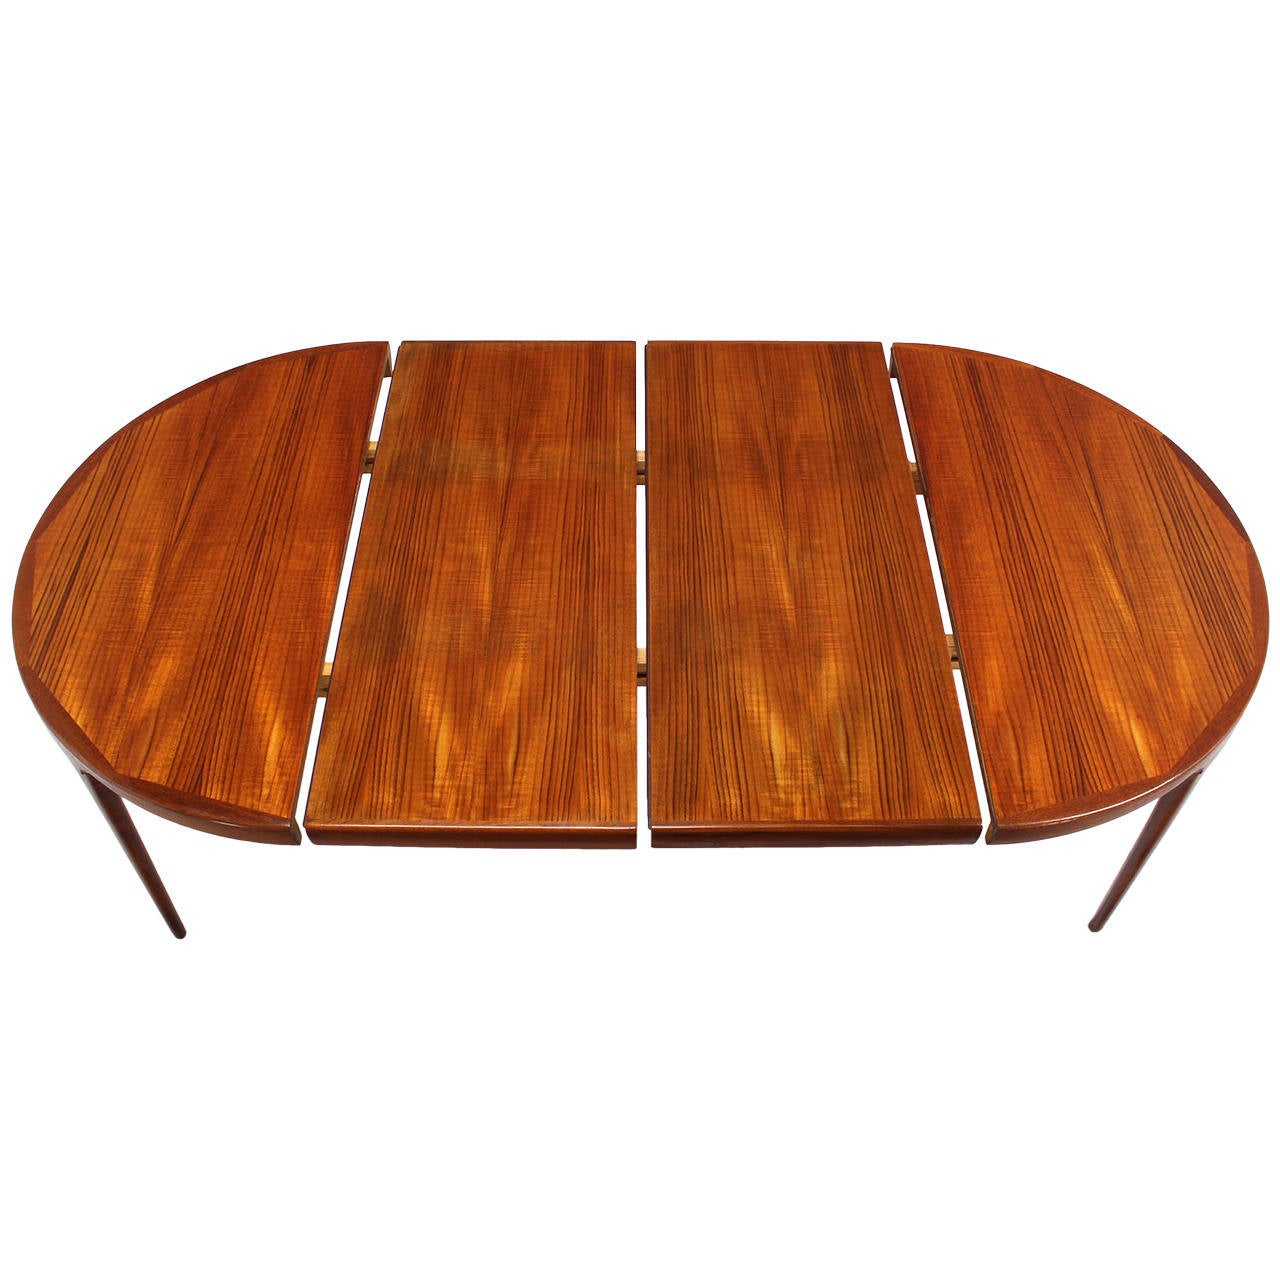 Danish Midcentury Modern Round Teak Dining Table With Two Leaves 1   Modern  Round Dining Table